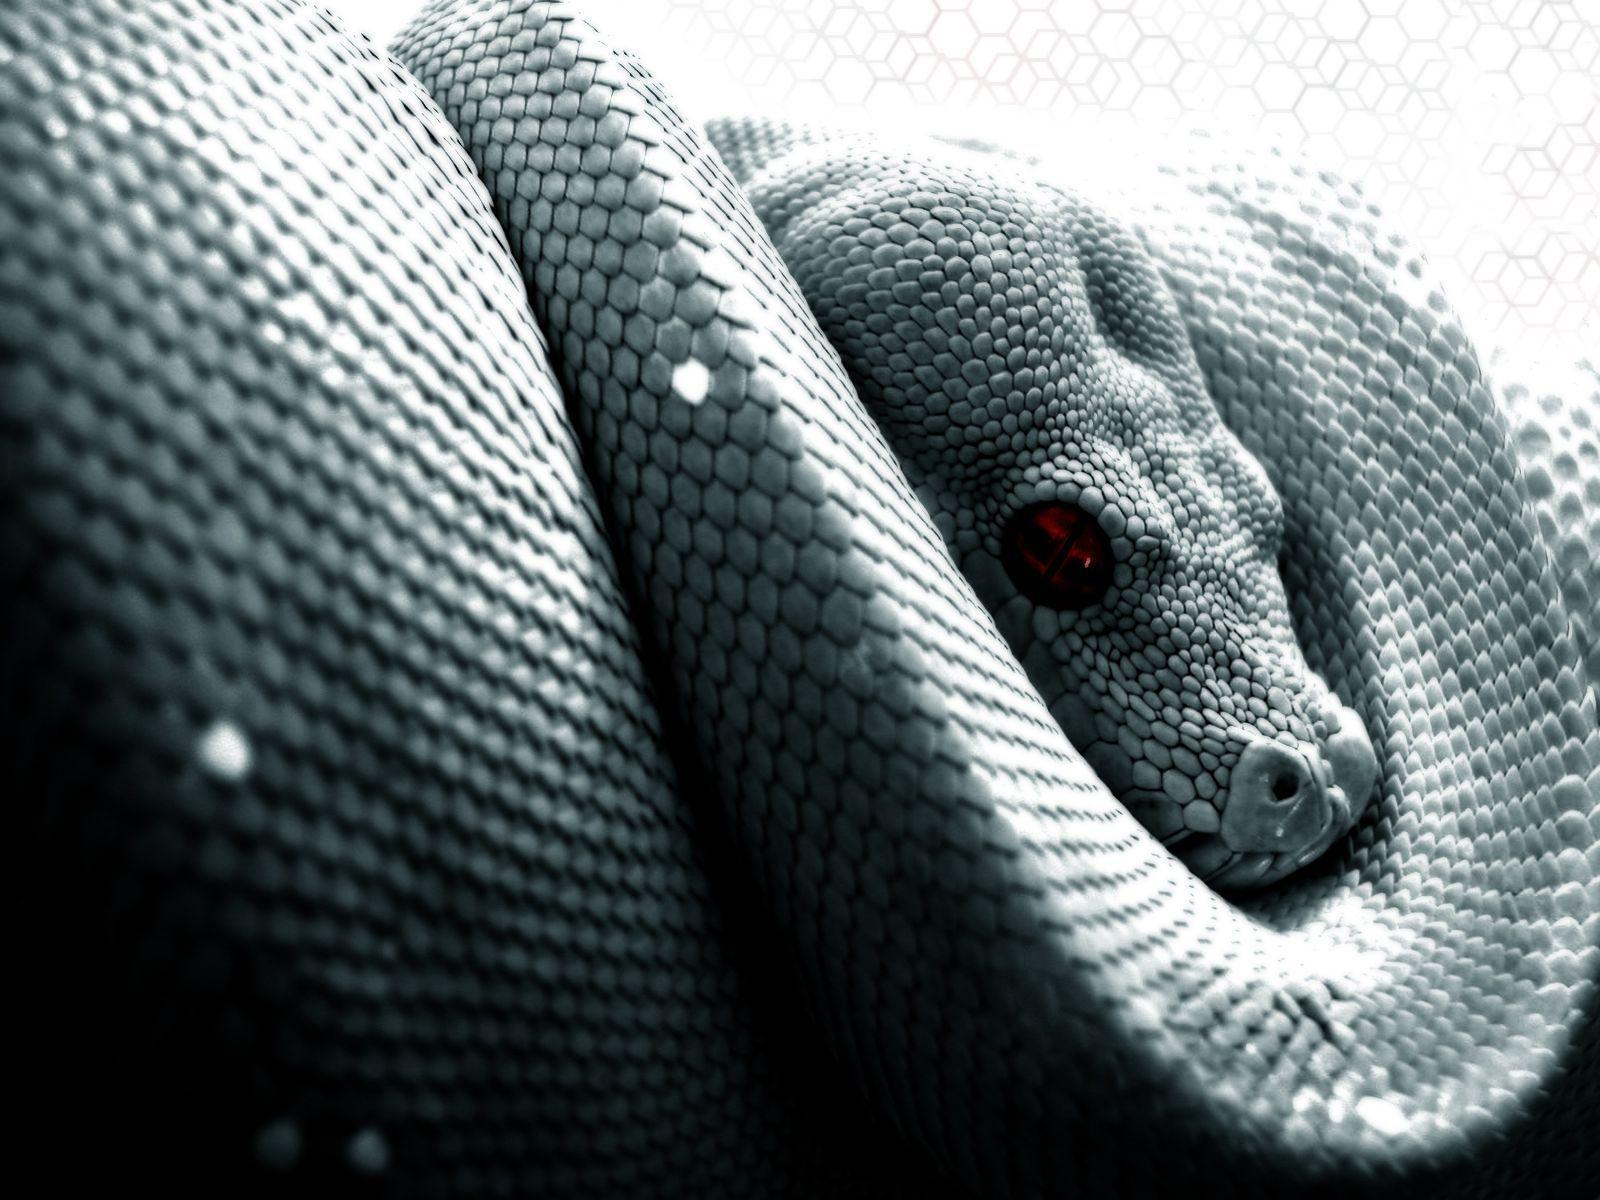 Cool Snake Wallpapers 1678 1600x1200 px